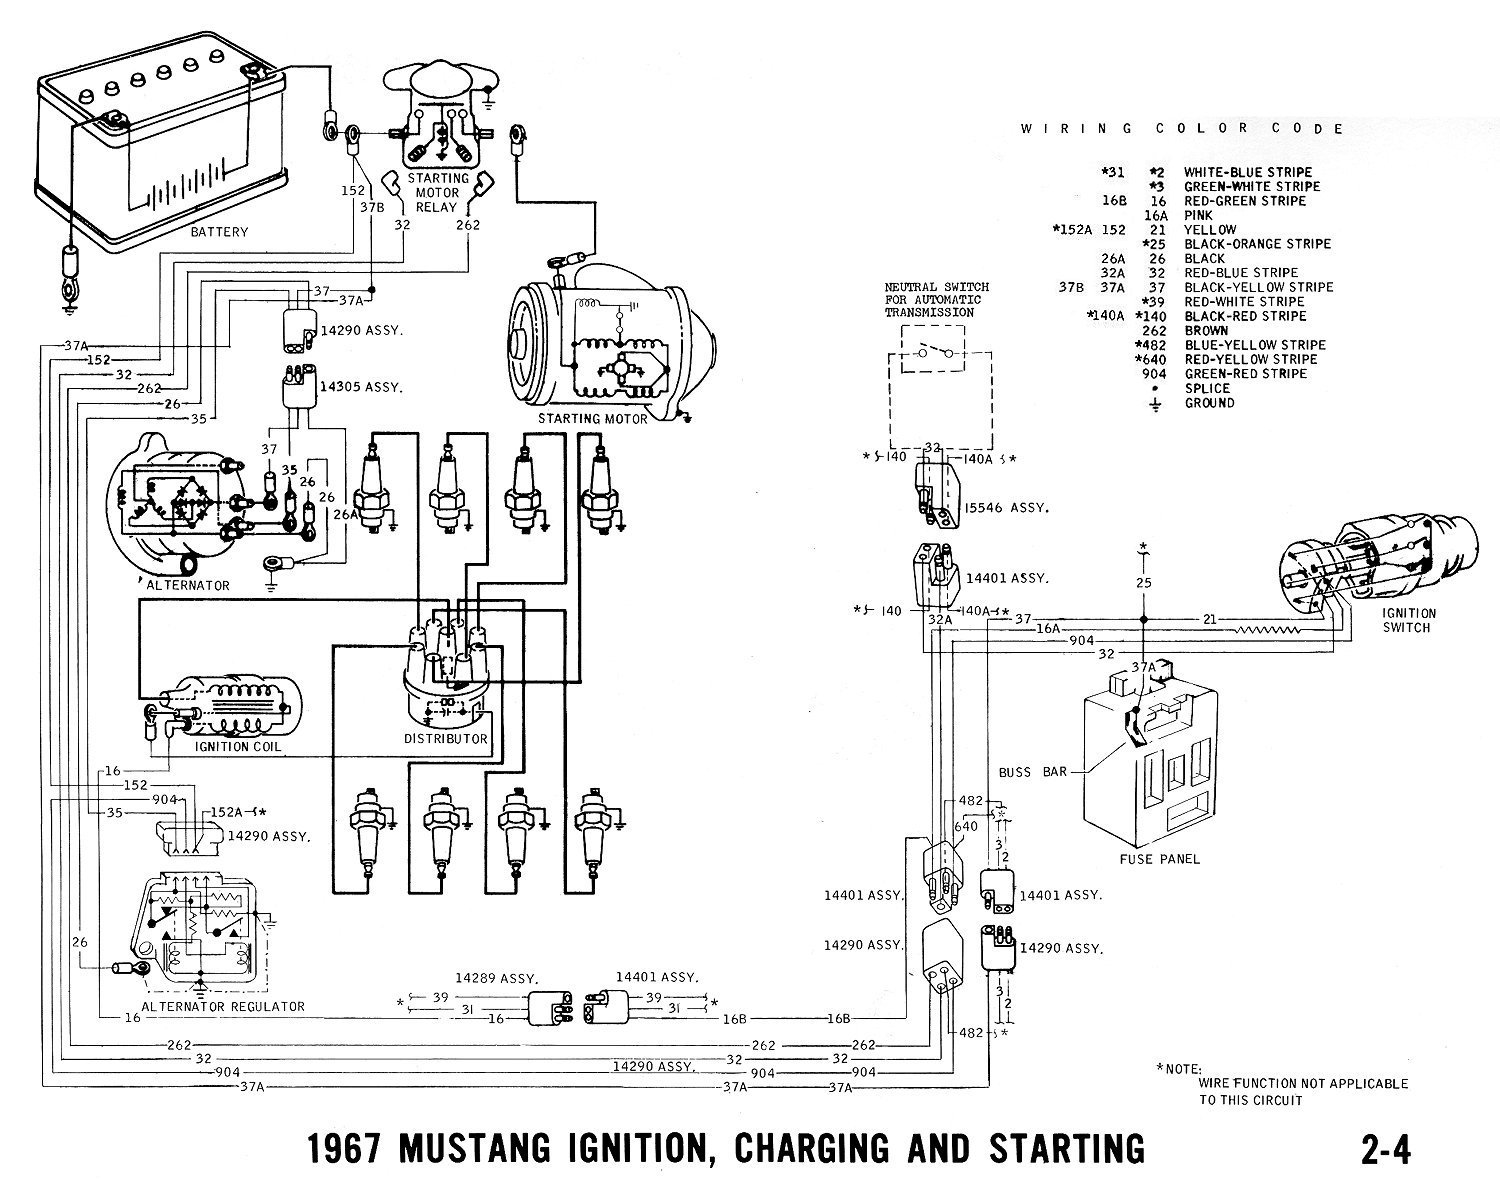 1968 pontiac gto ignition system diagram